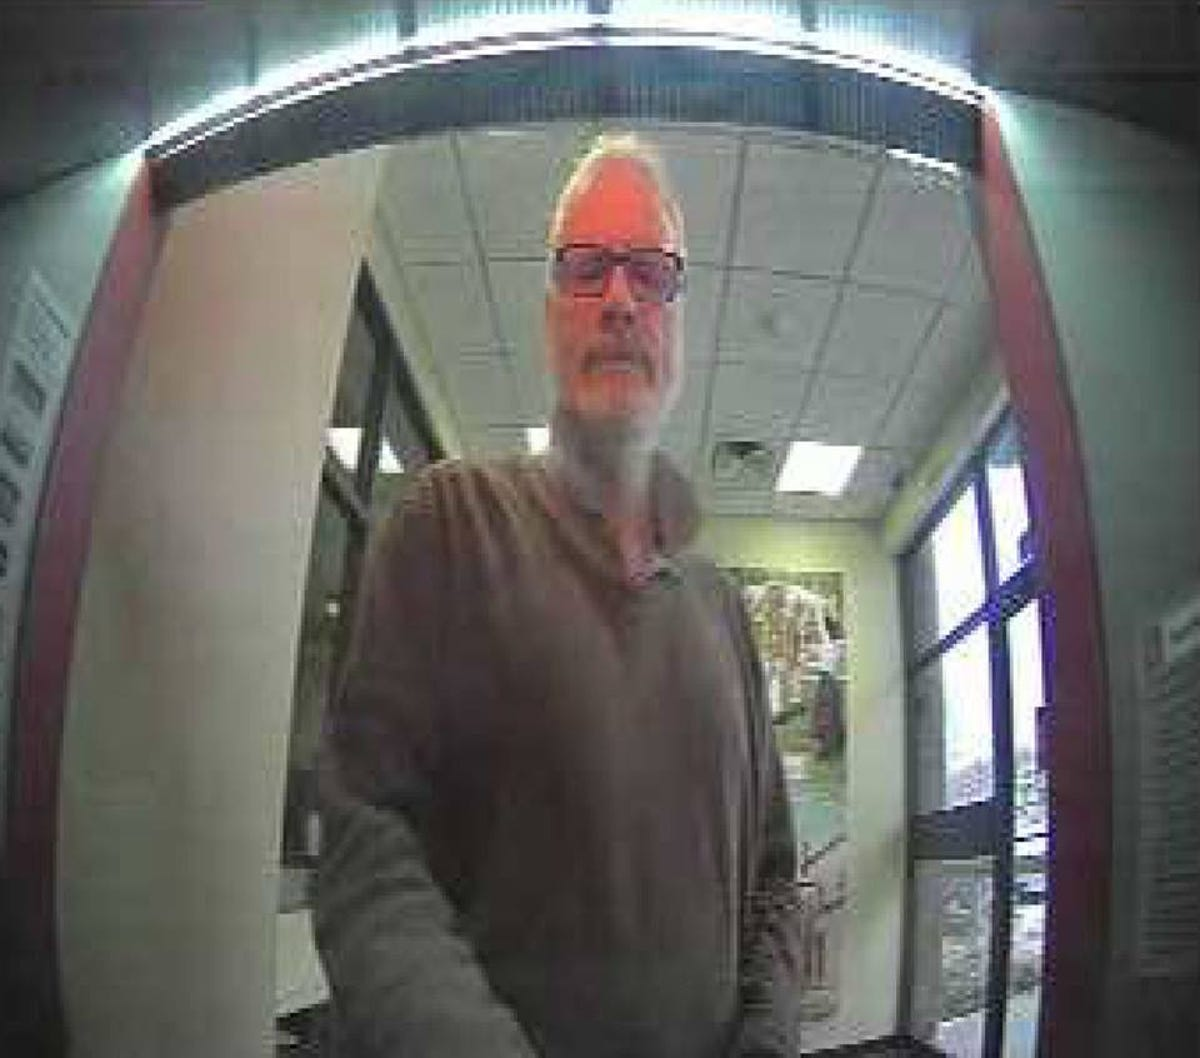 State Police: Have you seen this man? He may live in Neptune